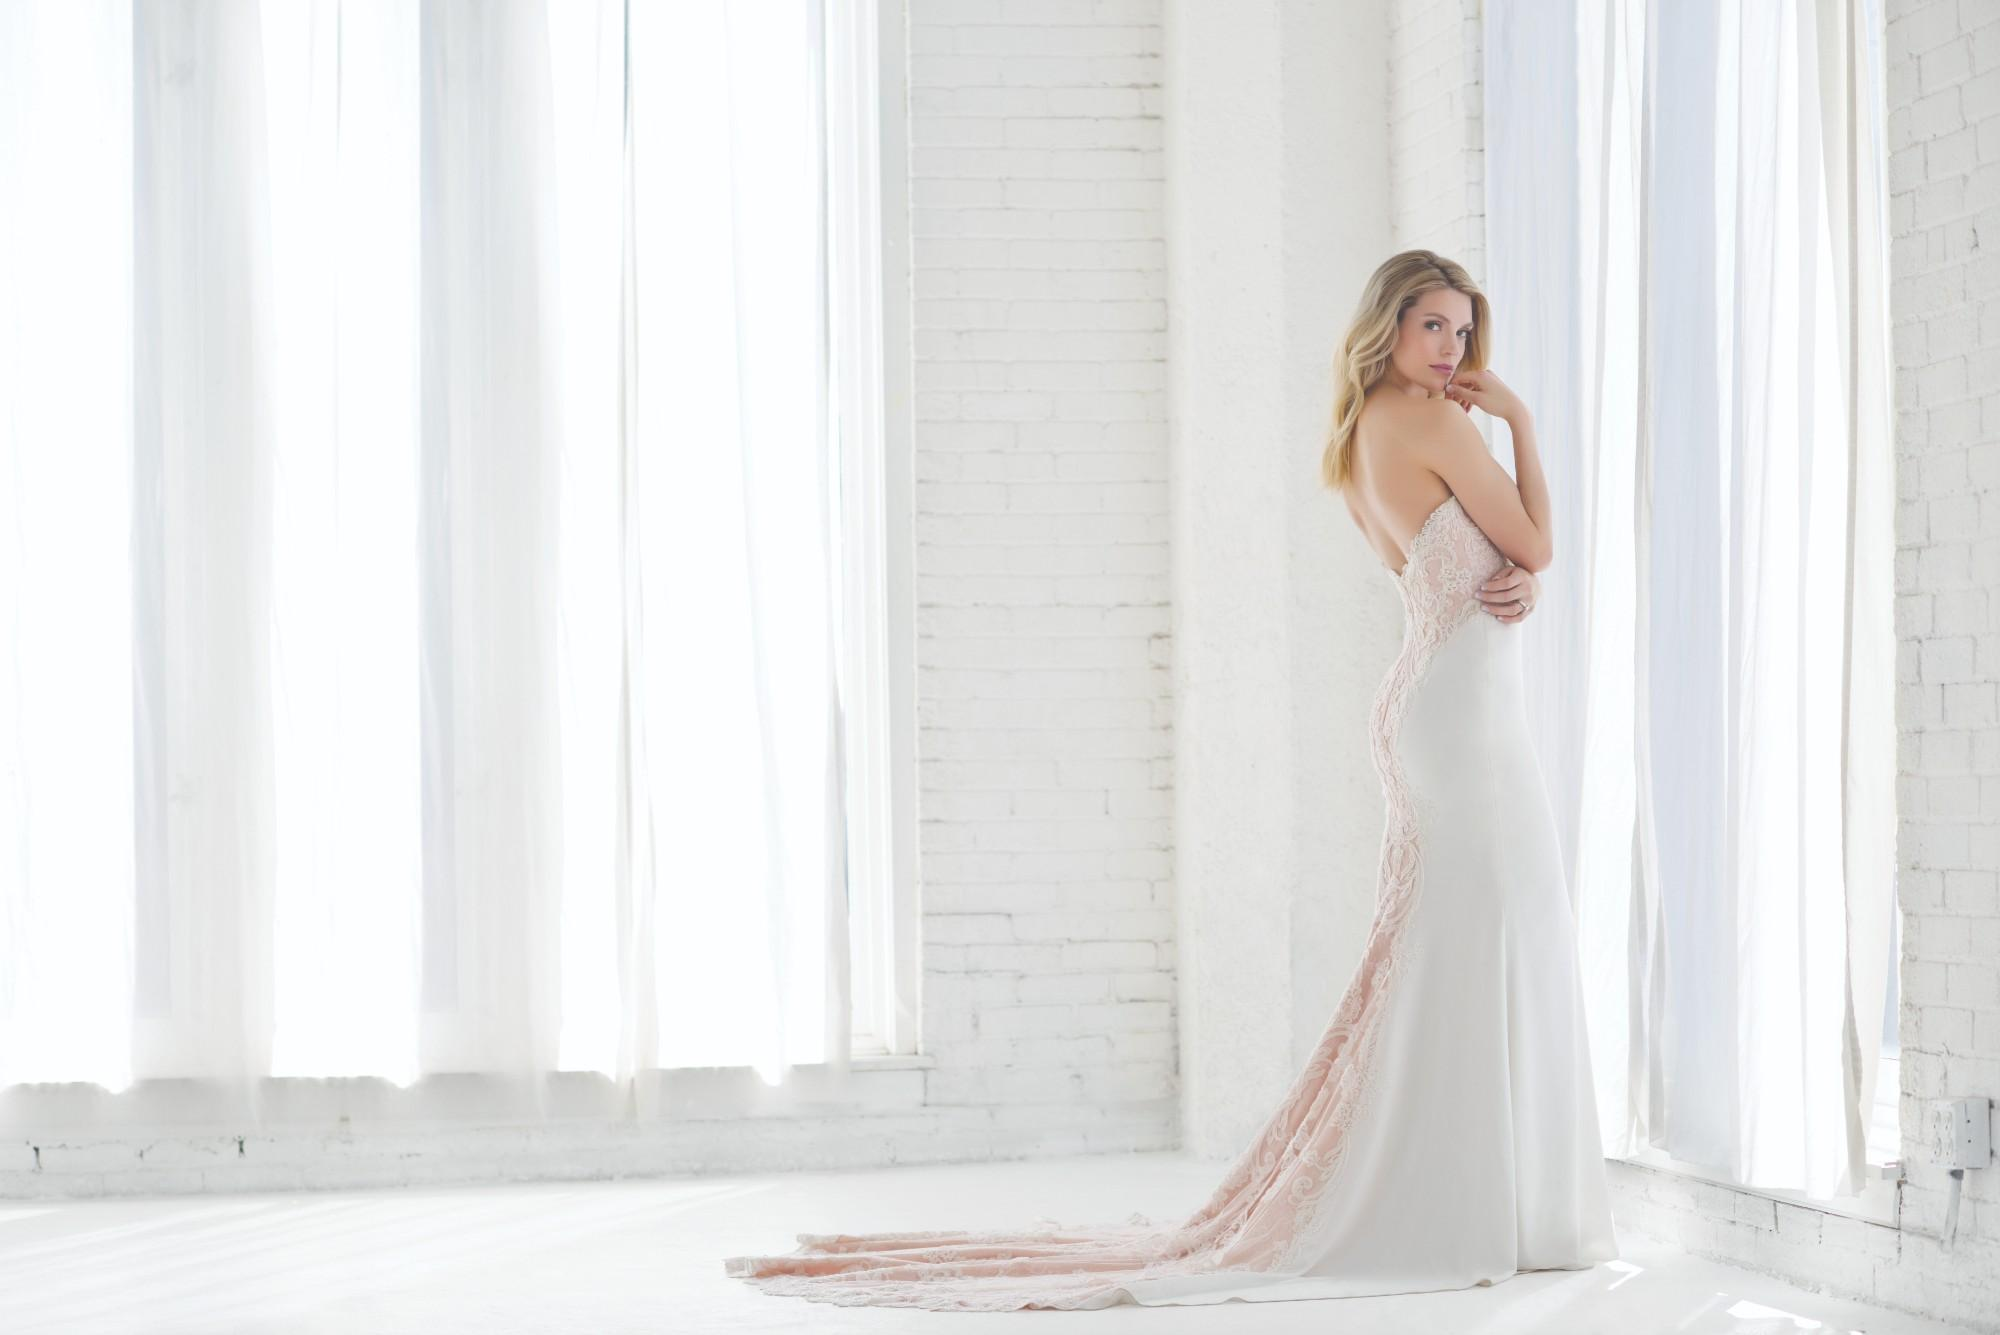 Pure Beauty Bridal Fashion Shoot - ChicagoStyle Weddings - Wedding Gown - Wedding Dress - July 2018